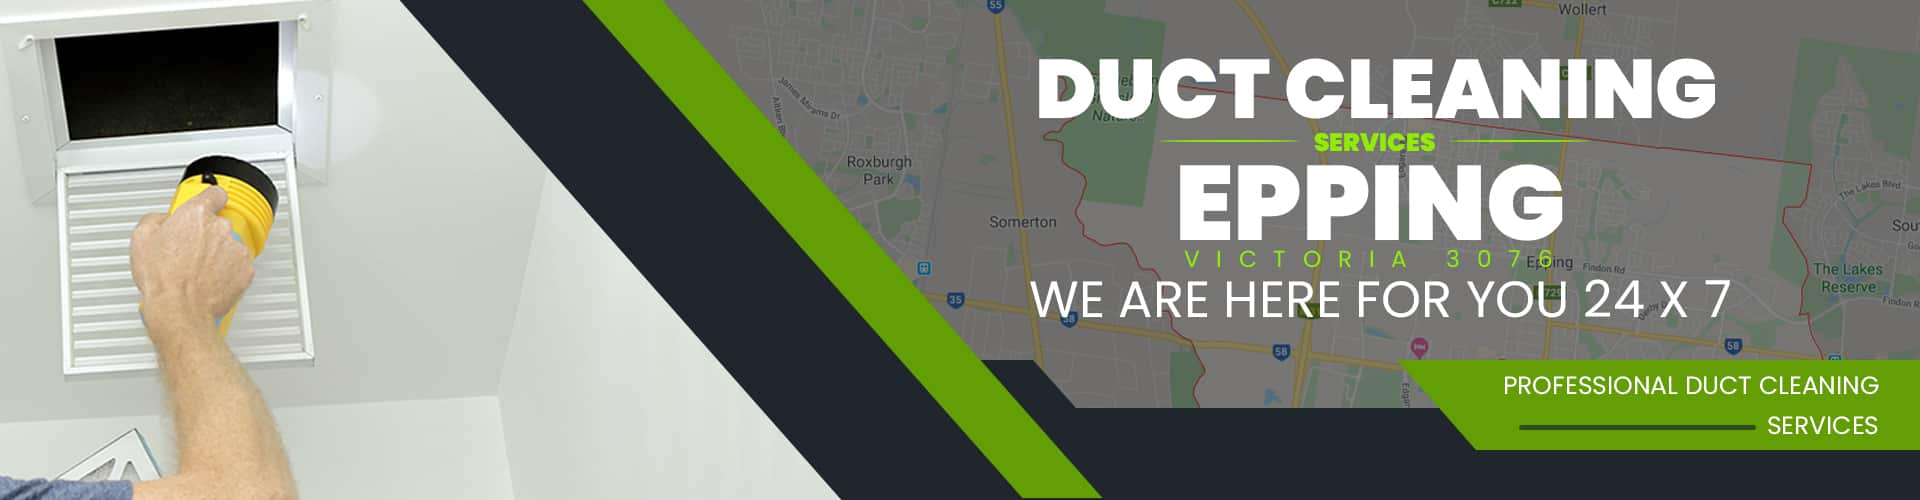 Duct Cleaning Epping